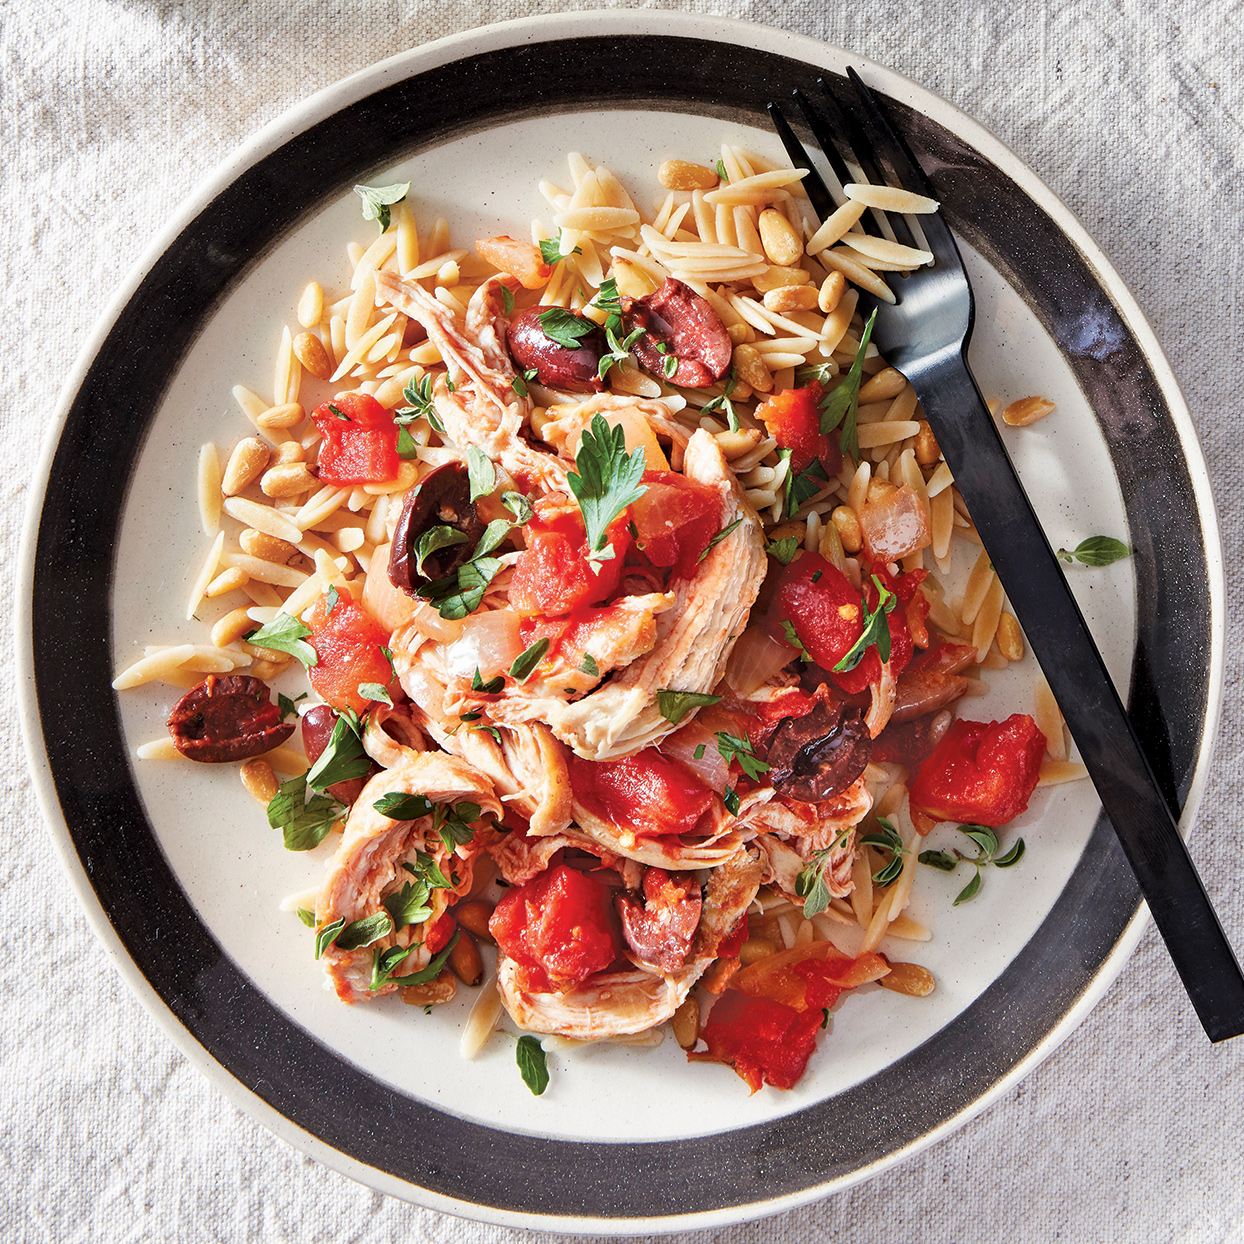 Let your slow cooker do the bulk of the work and end up with a meal that fulfills all your Mediterranean-food cravings. The mix of onions, tomatoes, kalamata olives, oregano and parsley adds pleasing acidity to the browned chicken, while toasted pine nuts lend interest to the orzo.